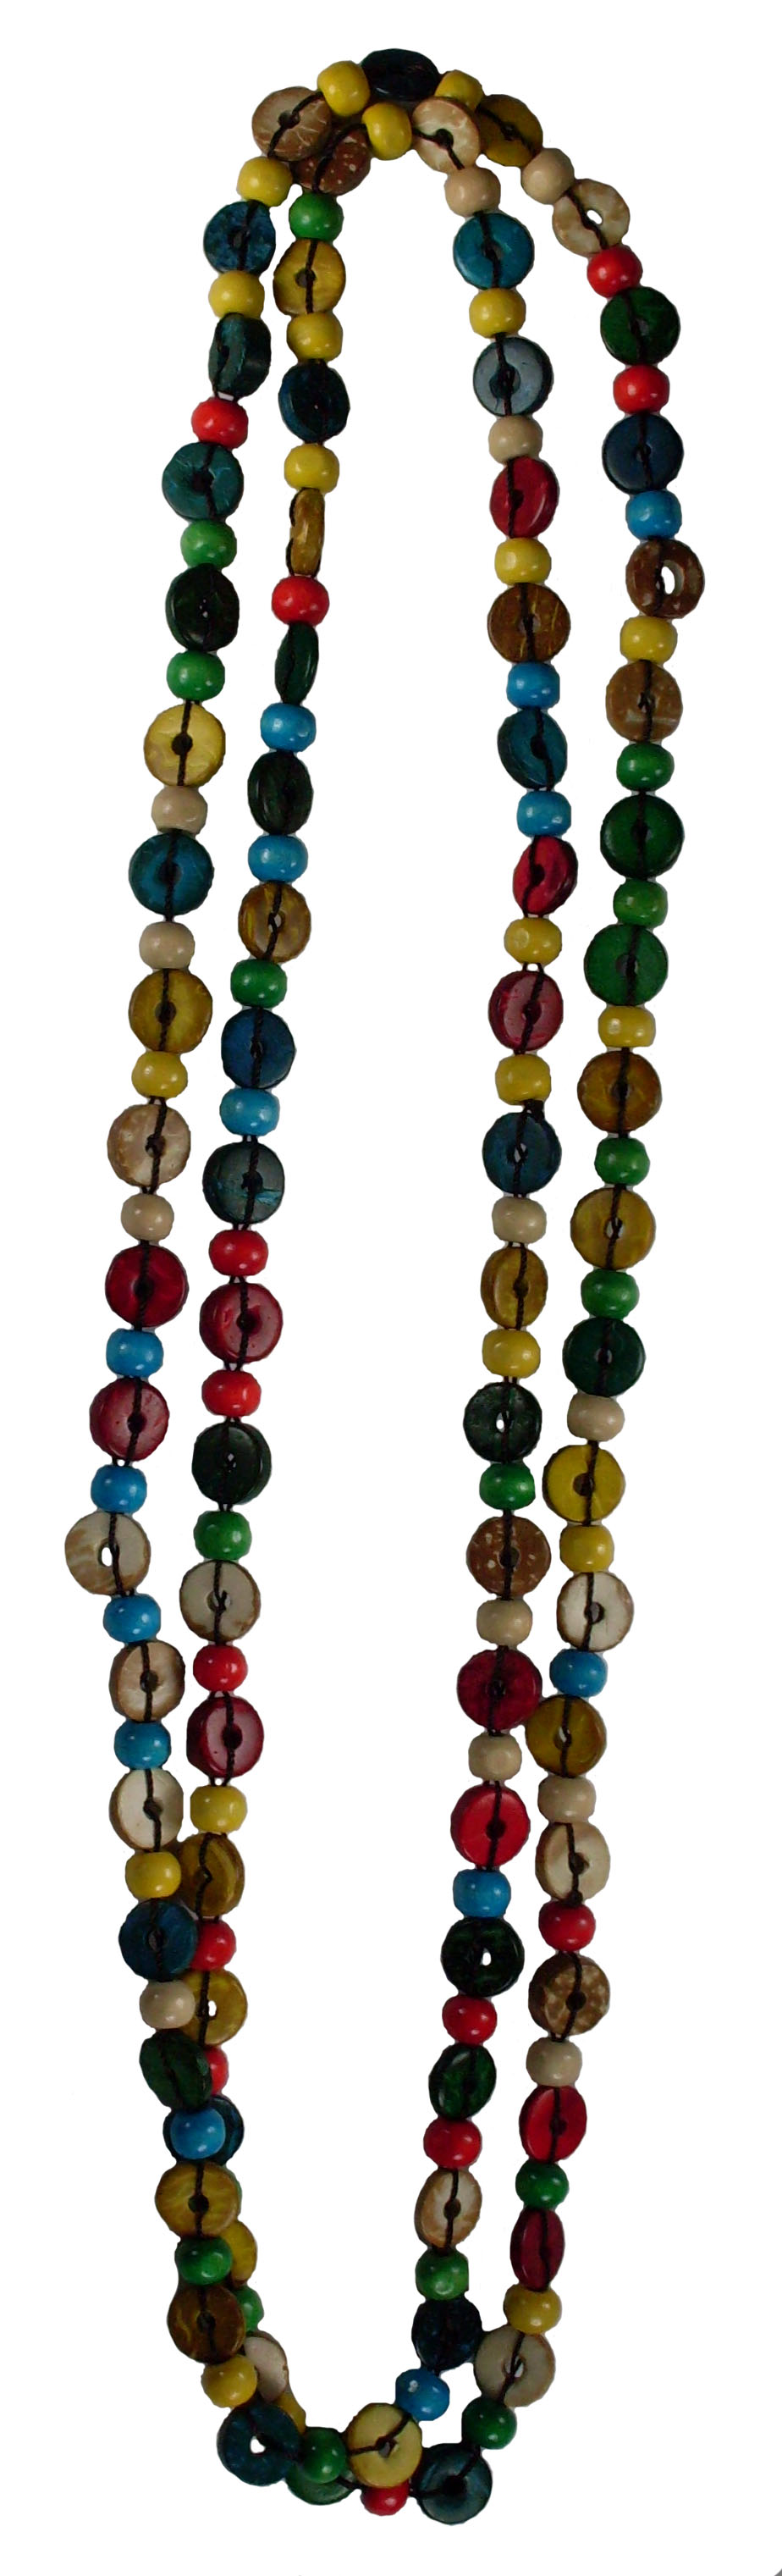 "Island Colored Coco 60"" Long Bead Necklace #5"